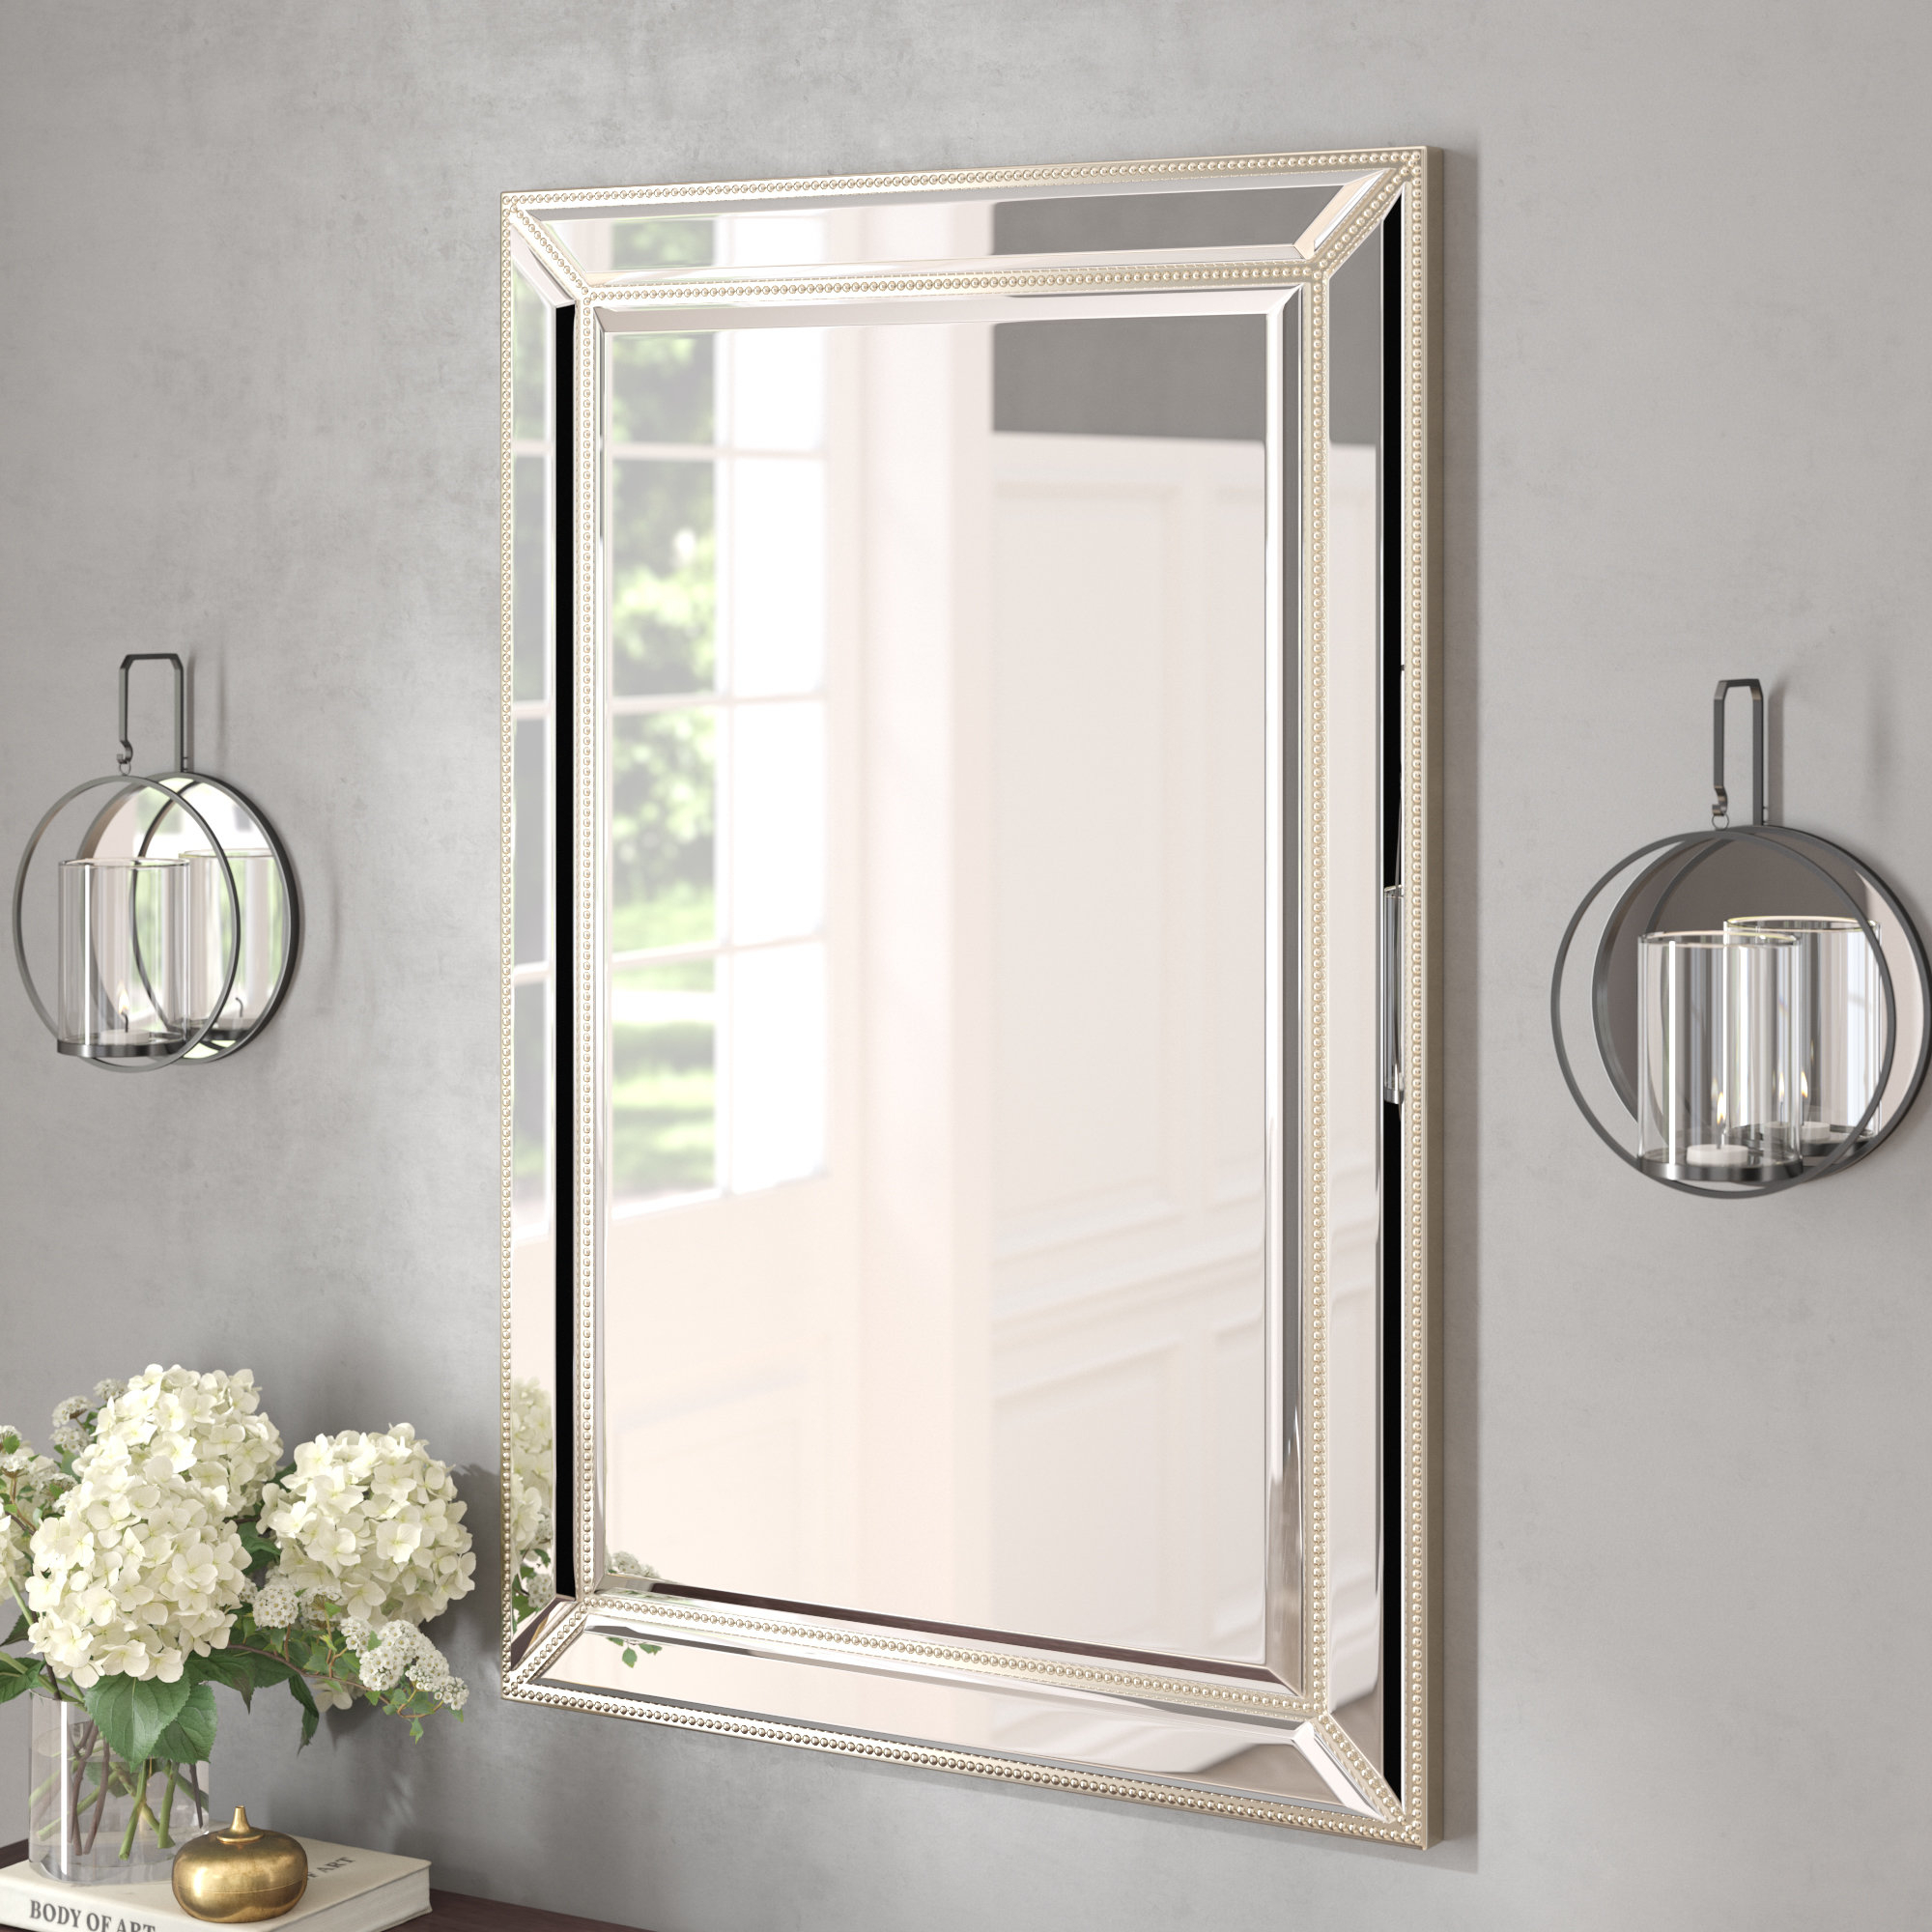 Villa Traditional Beveled Accent Mirror Regarding Willacoochee Traditional Beveled Accent Mirrors (Photo 7 of 20)